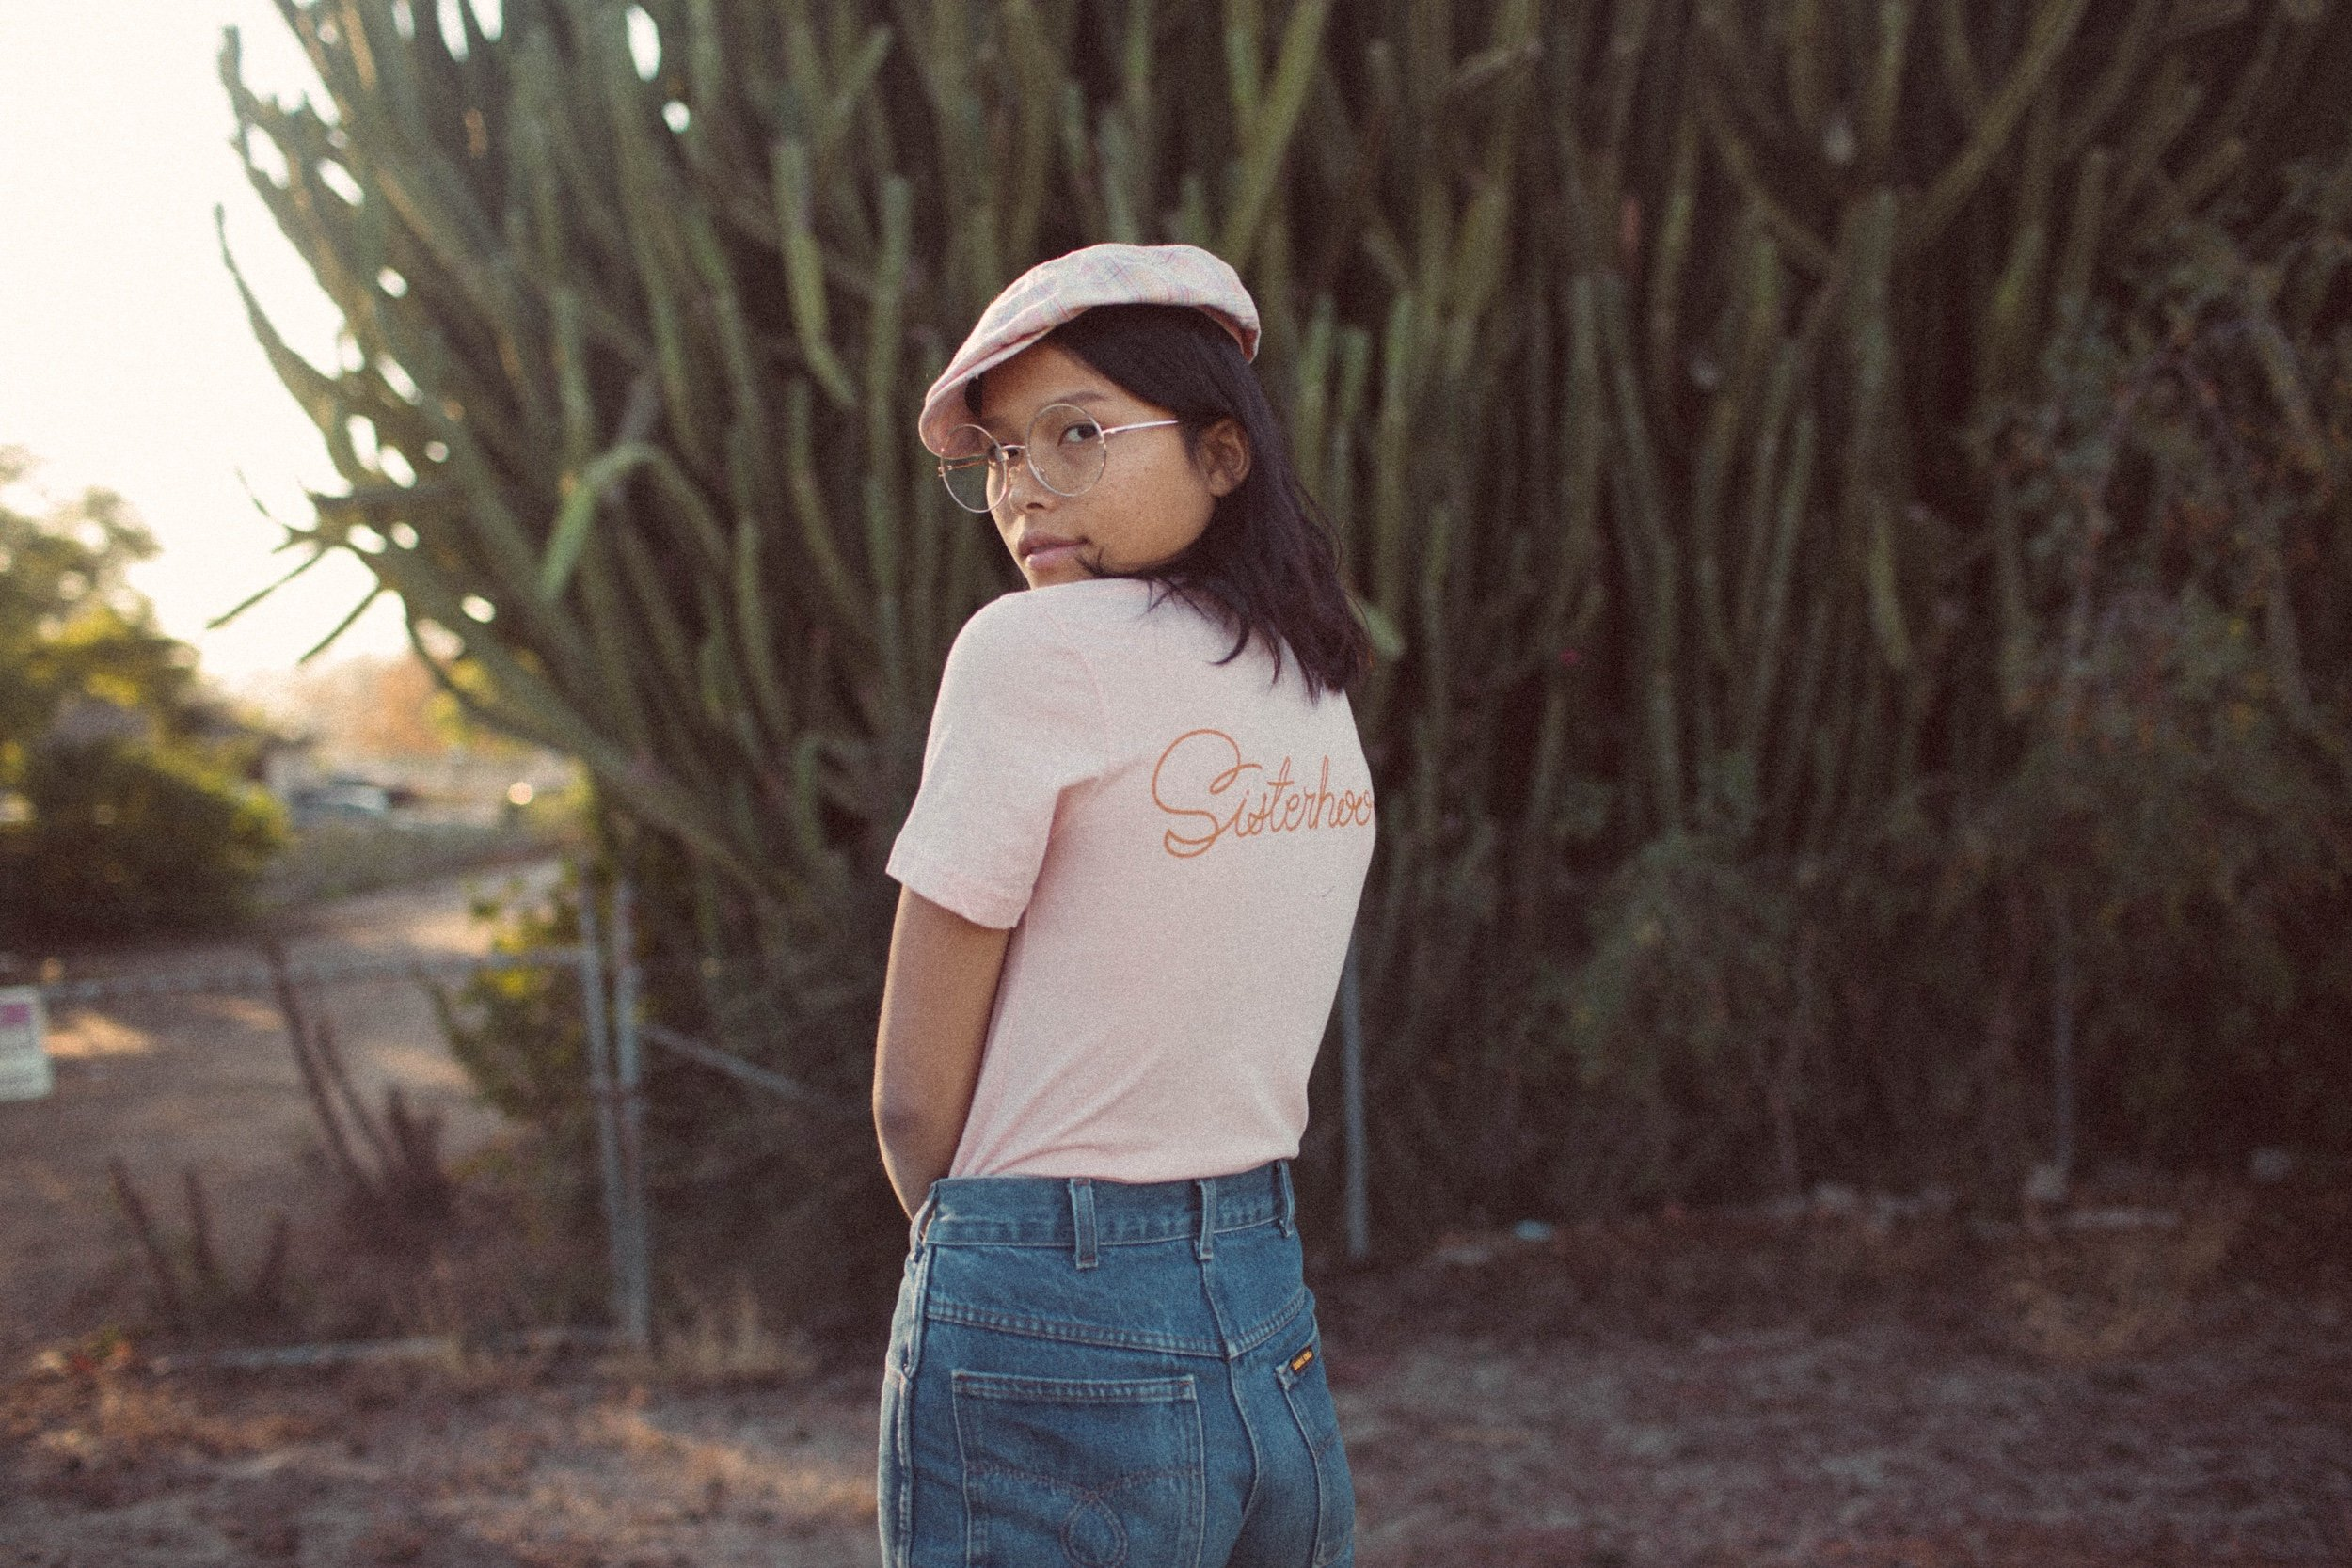 Image of a model wearing a hat and a t-shirt looking back over her shoulder against a background of trees